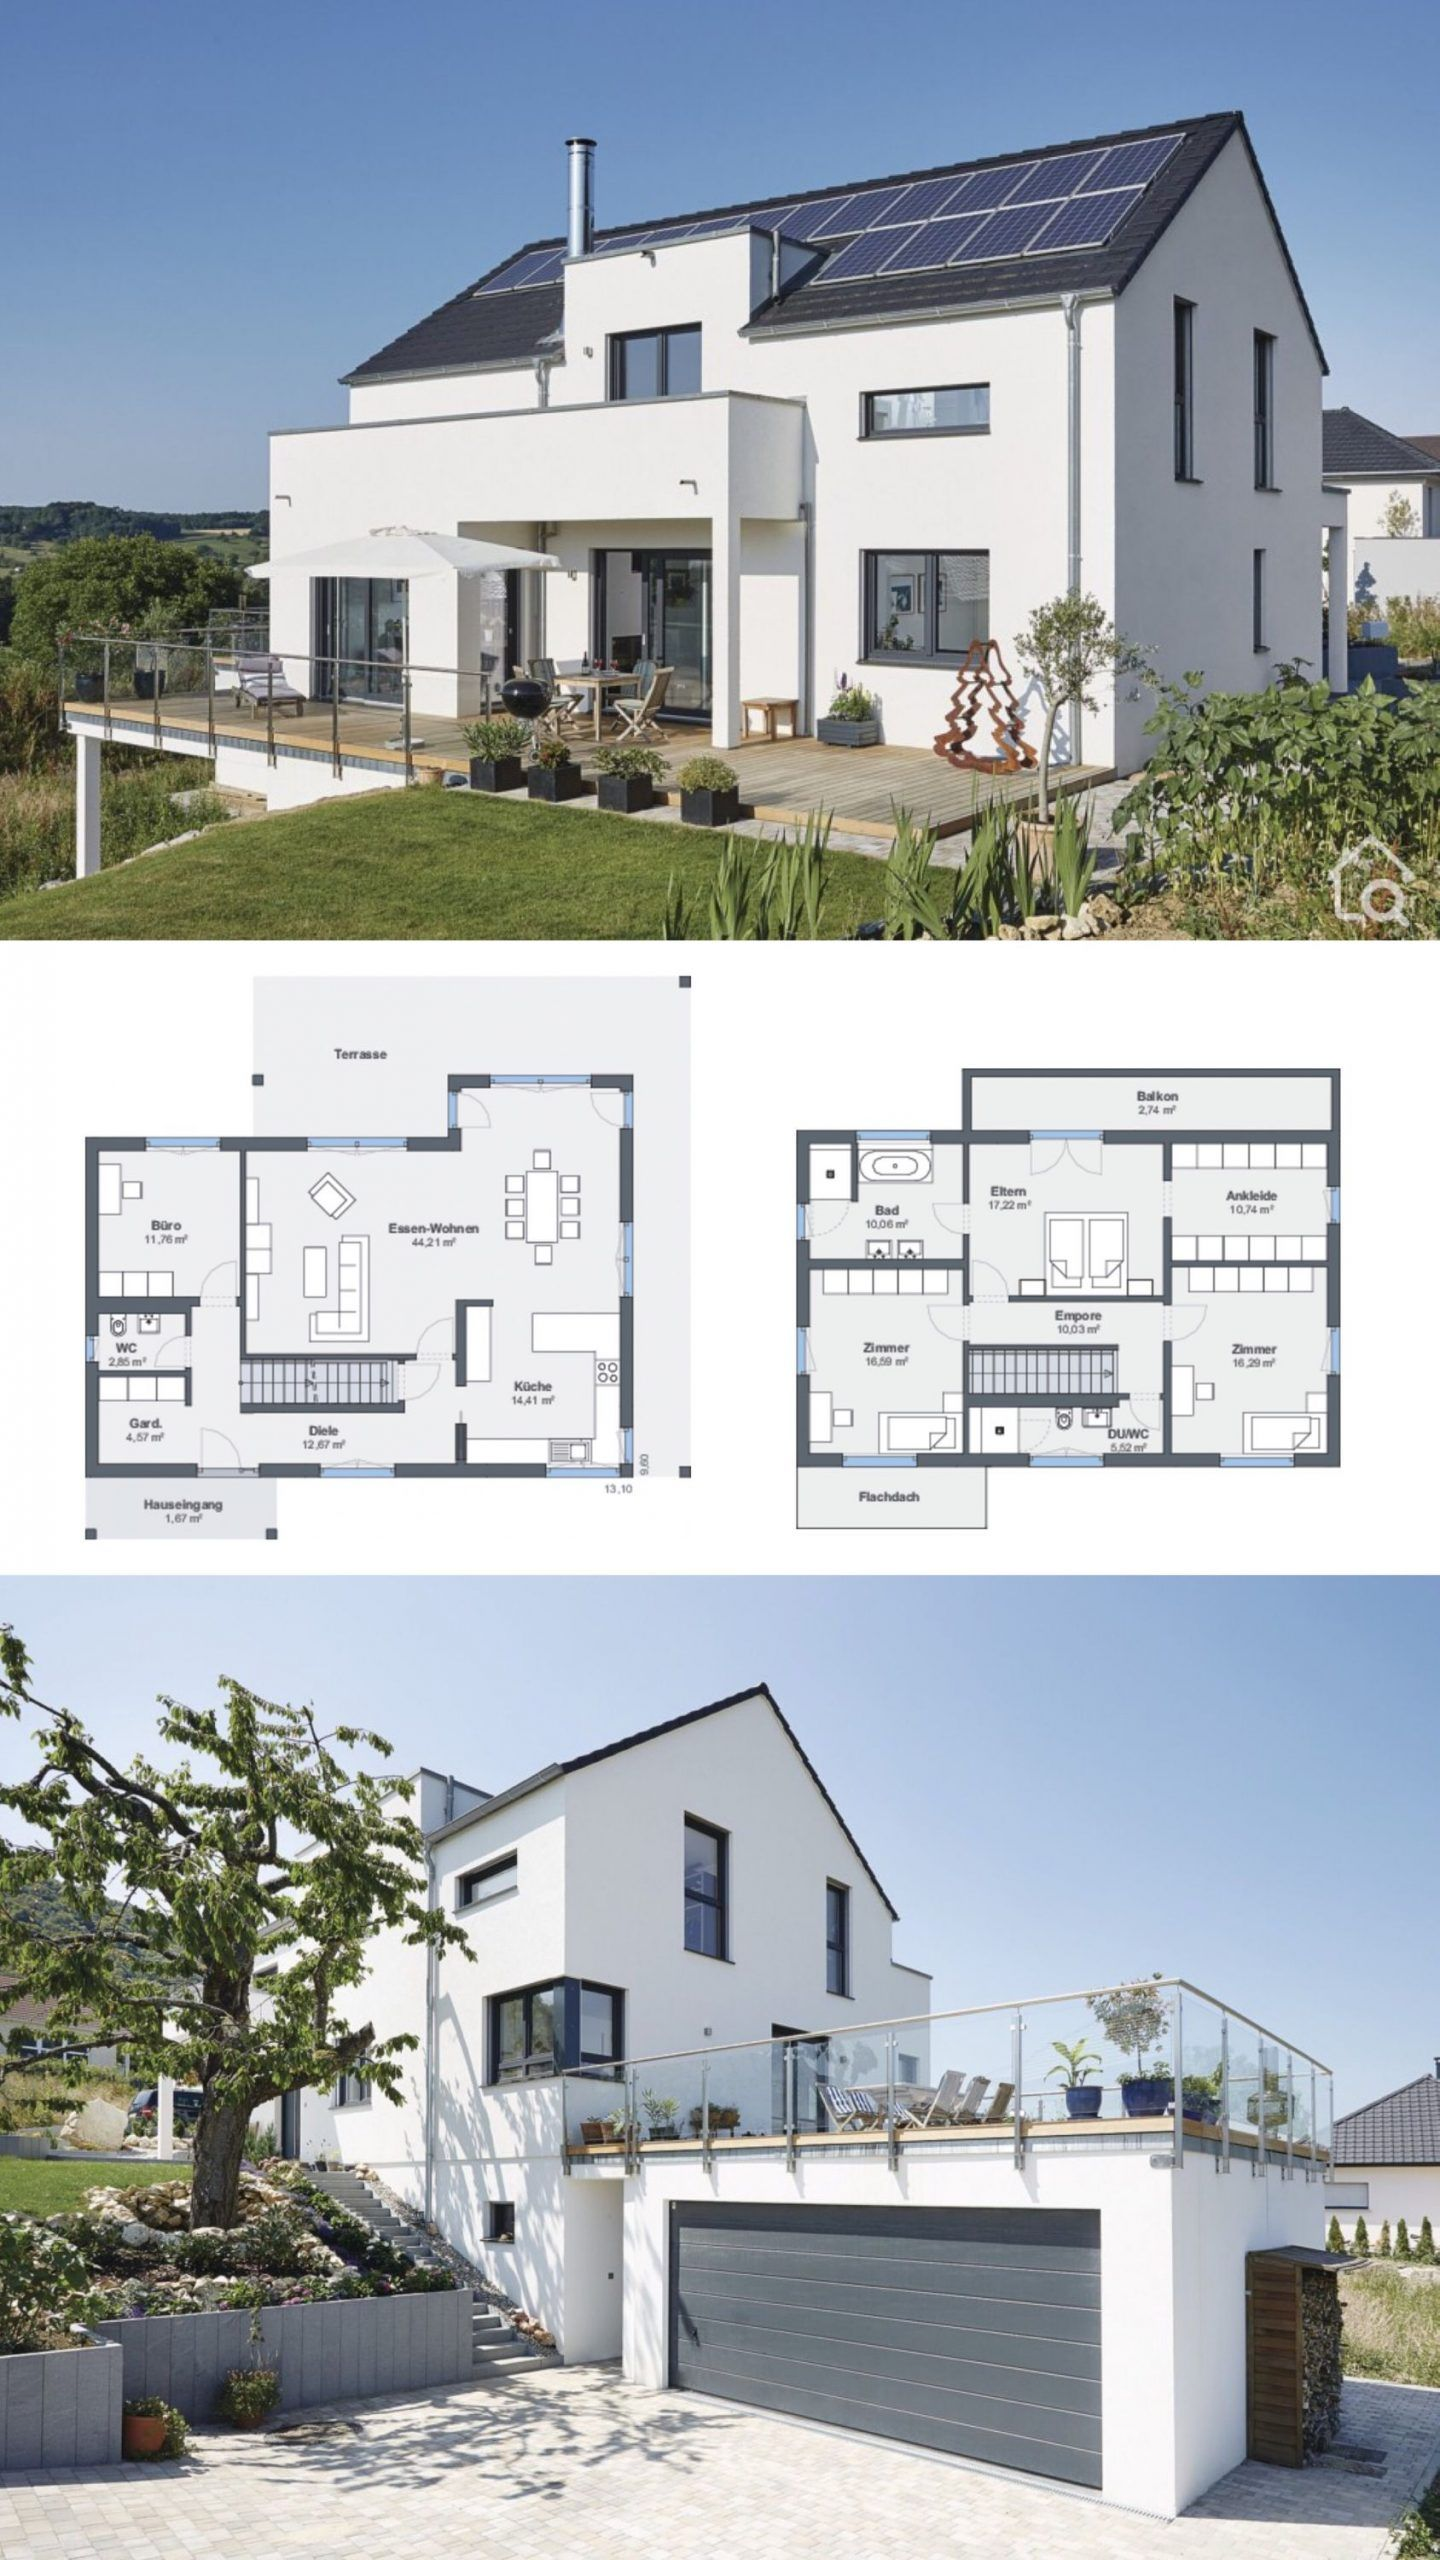 Single Family House Modern Floor Plan With Garage Separate Apartment Gable Roof House Ideas On A Slope Apart In 2020 Modern Floor Plans Gable Roof House House Roof